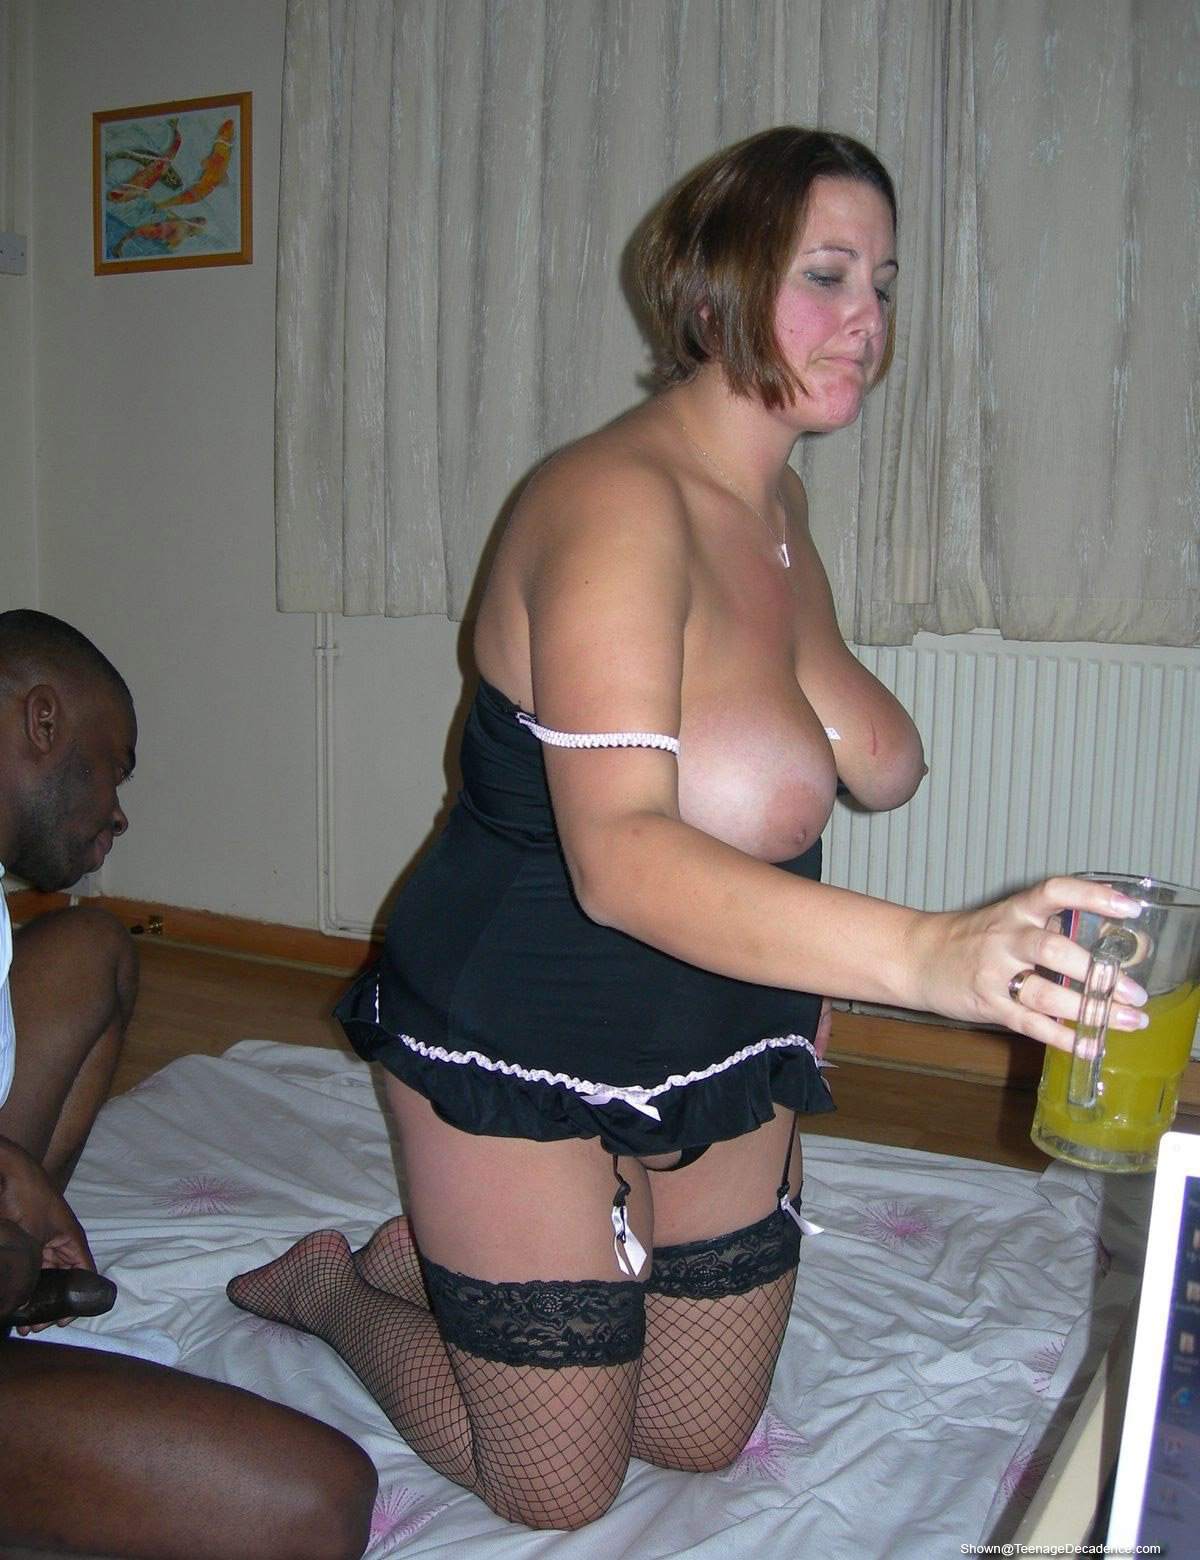 Two Black Individuals Fucking My Wife